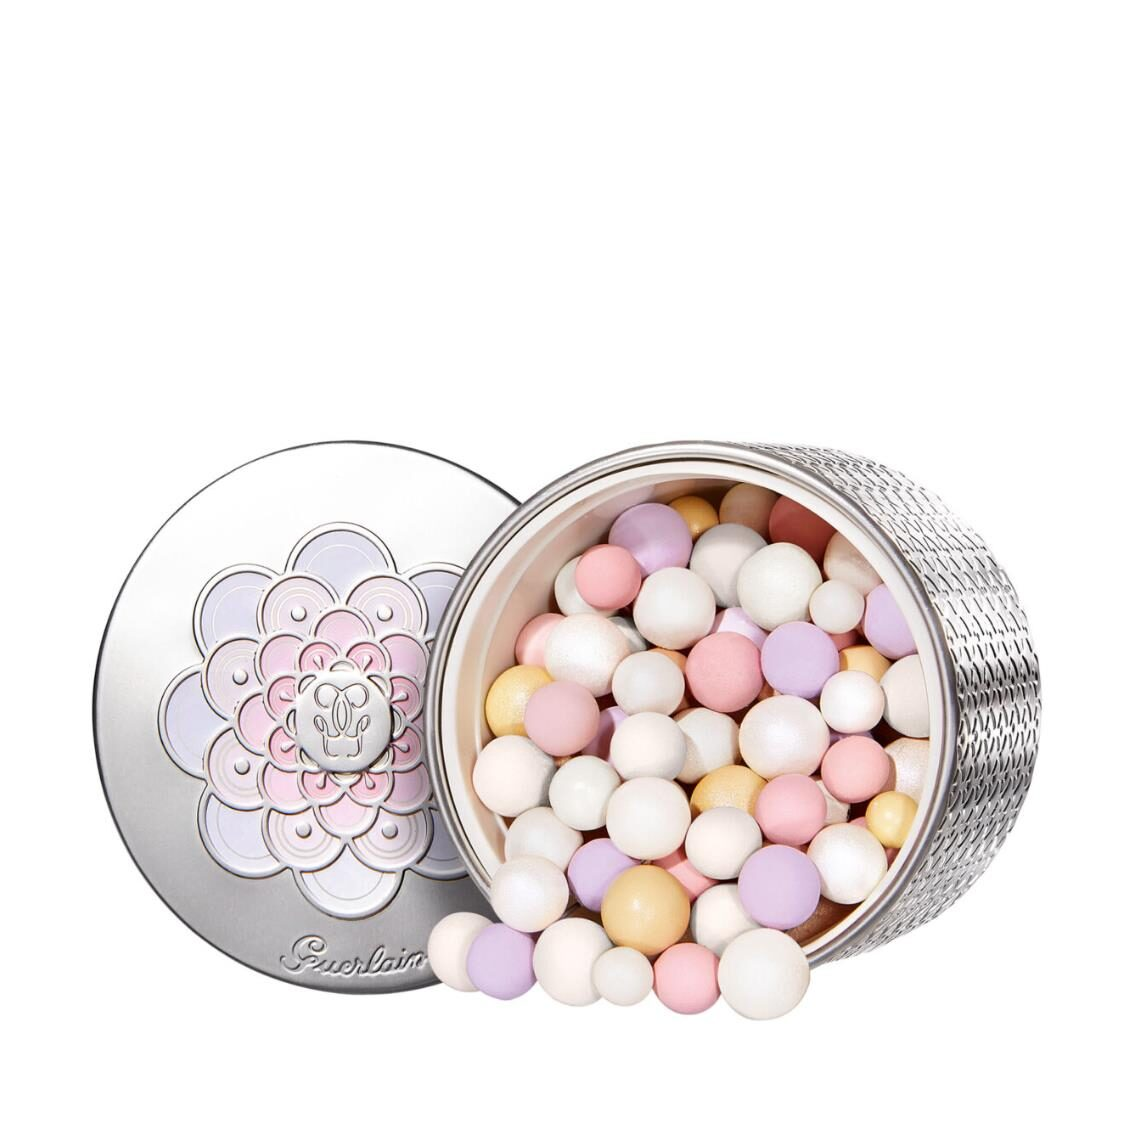 Mtorites Light Revealing Pearls Of Powder